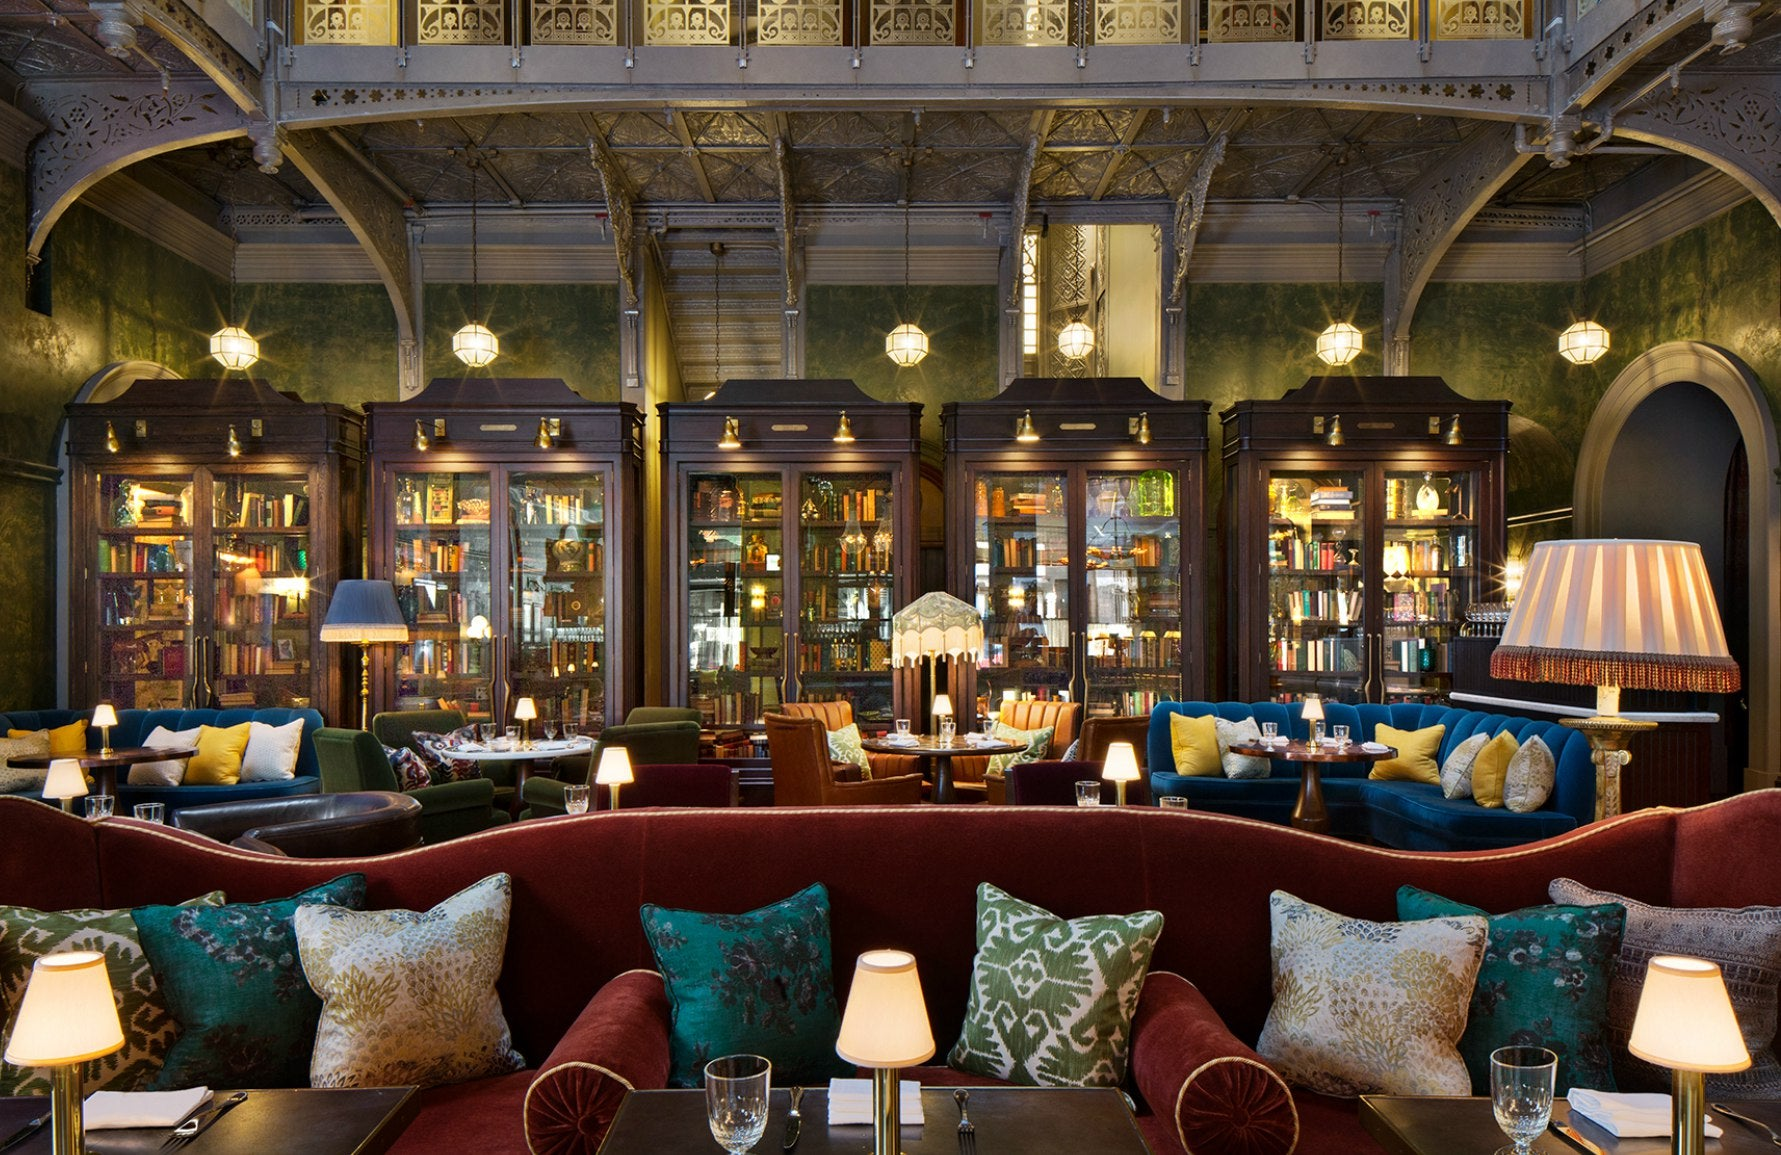 The Beekman Hotel New York | The Bar Room by Martin Brudnizki | Read more in The Luxurist at LuxDeco.com